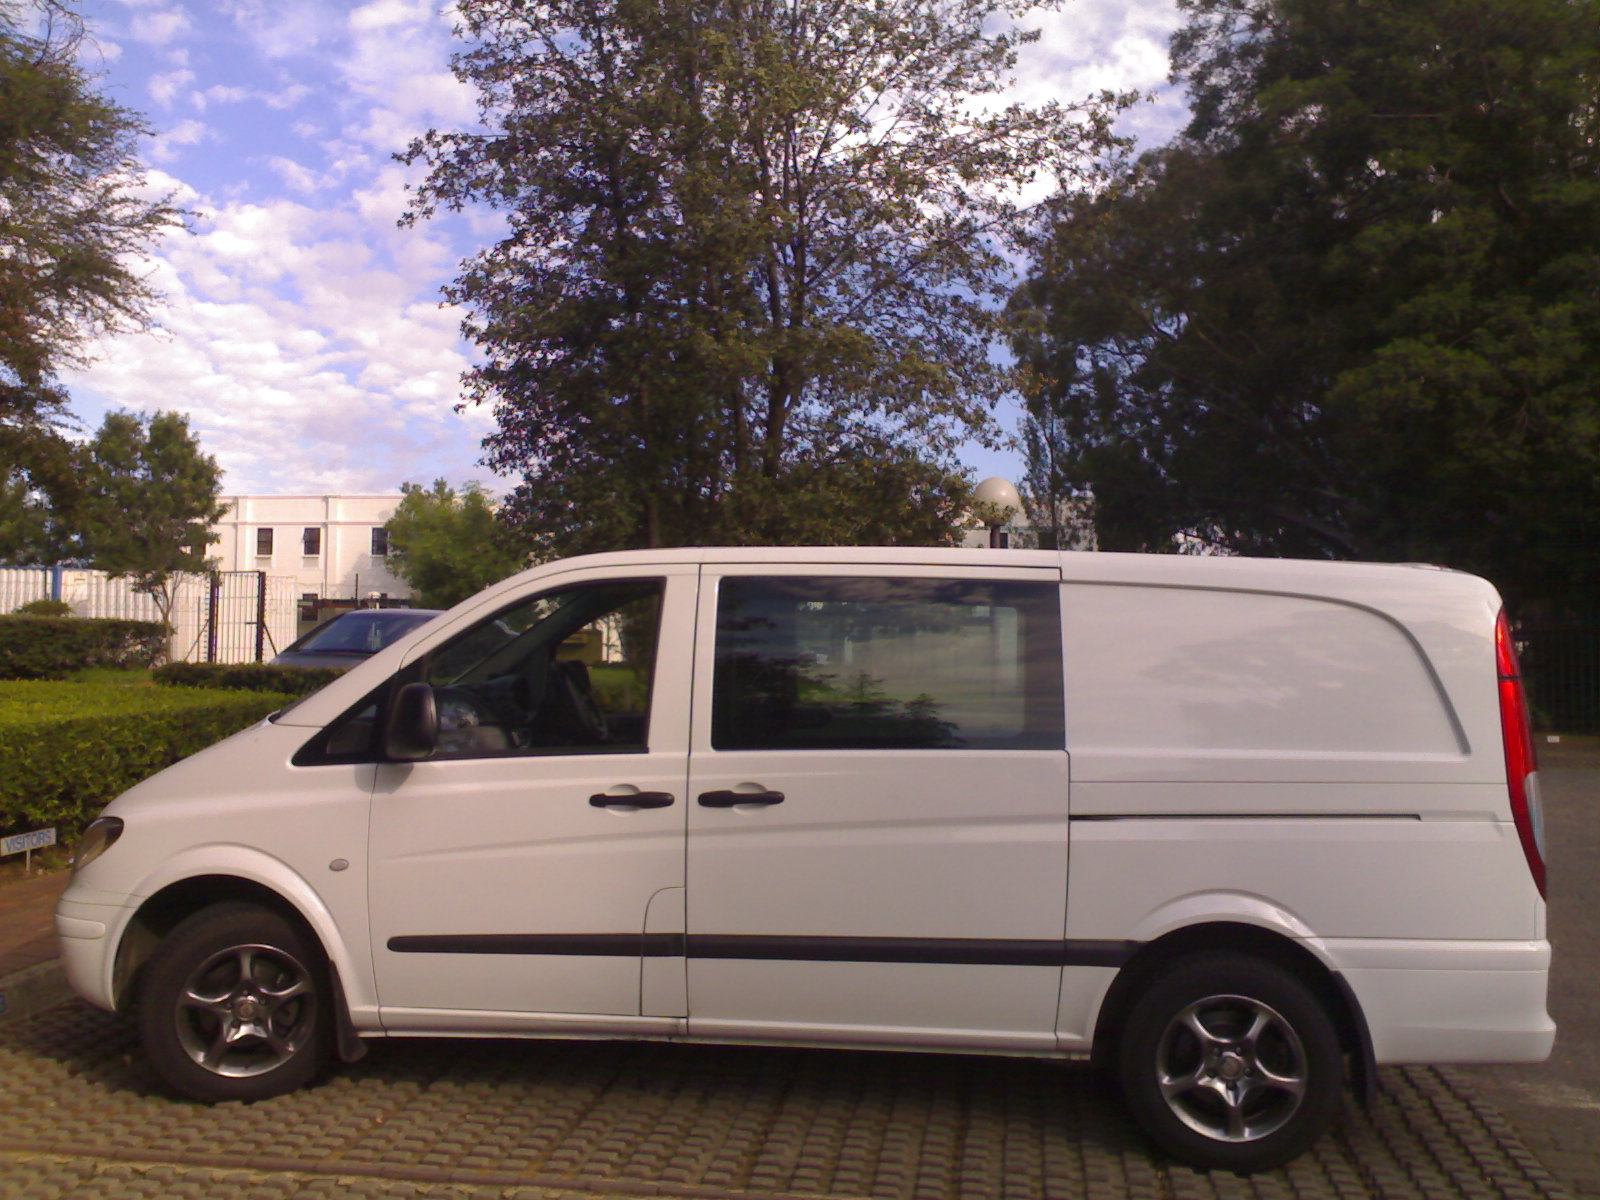 Reviews about Mercedes Vito in the forums pages